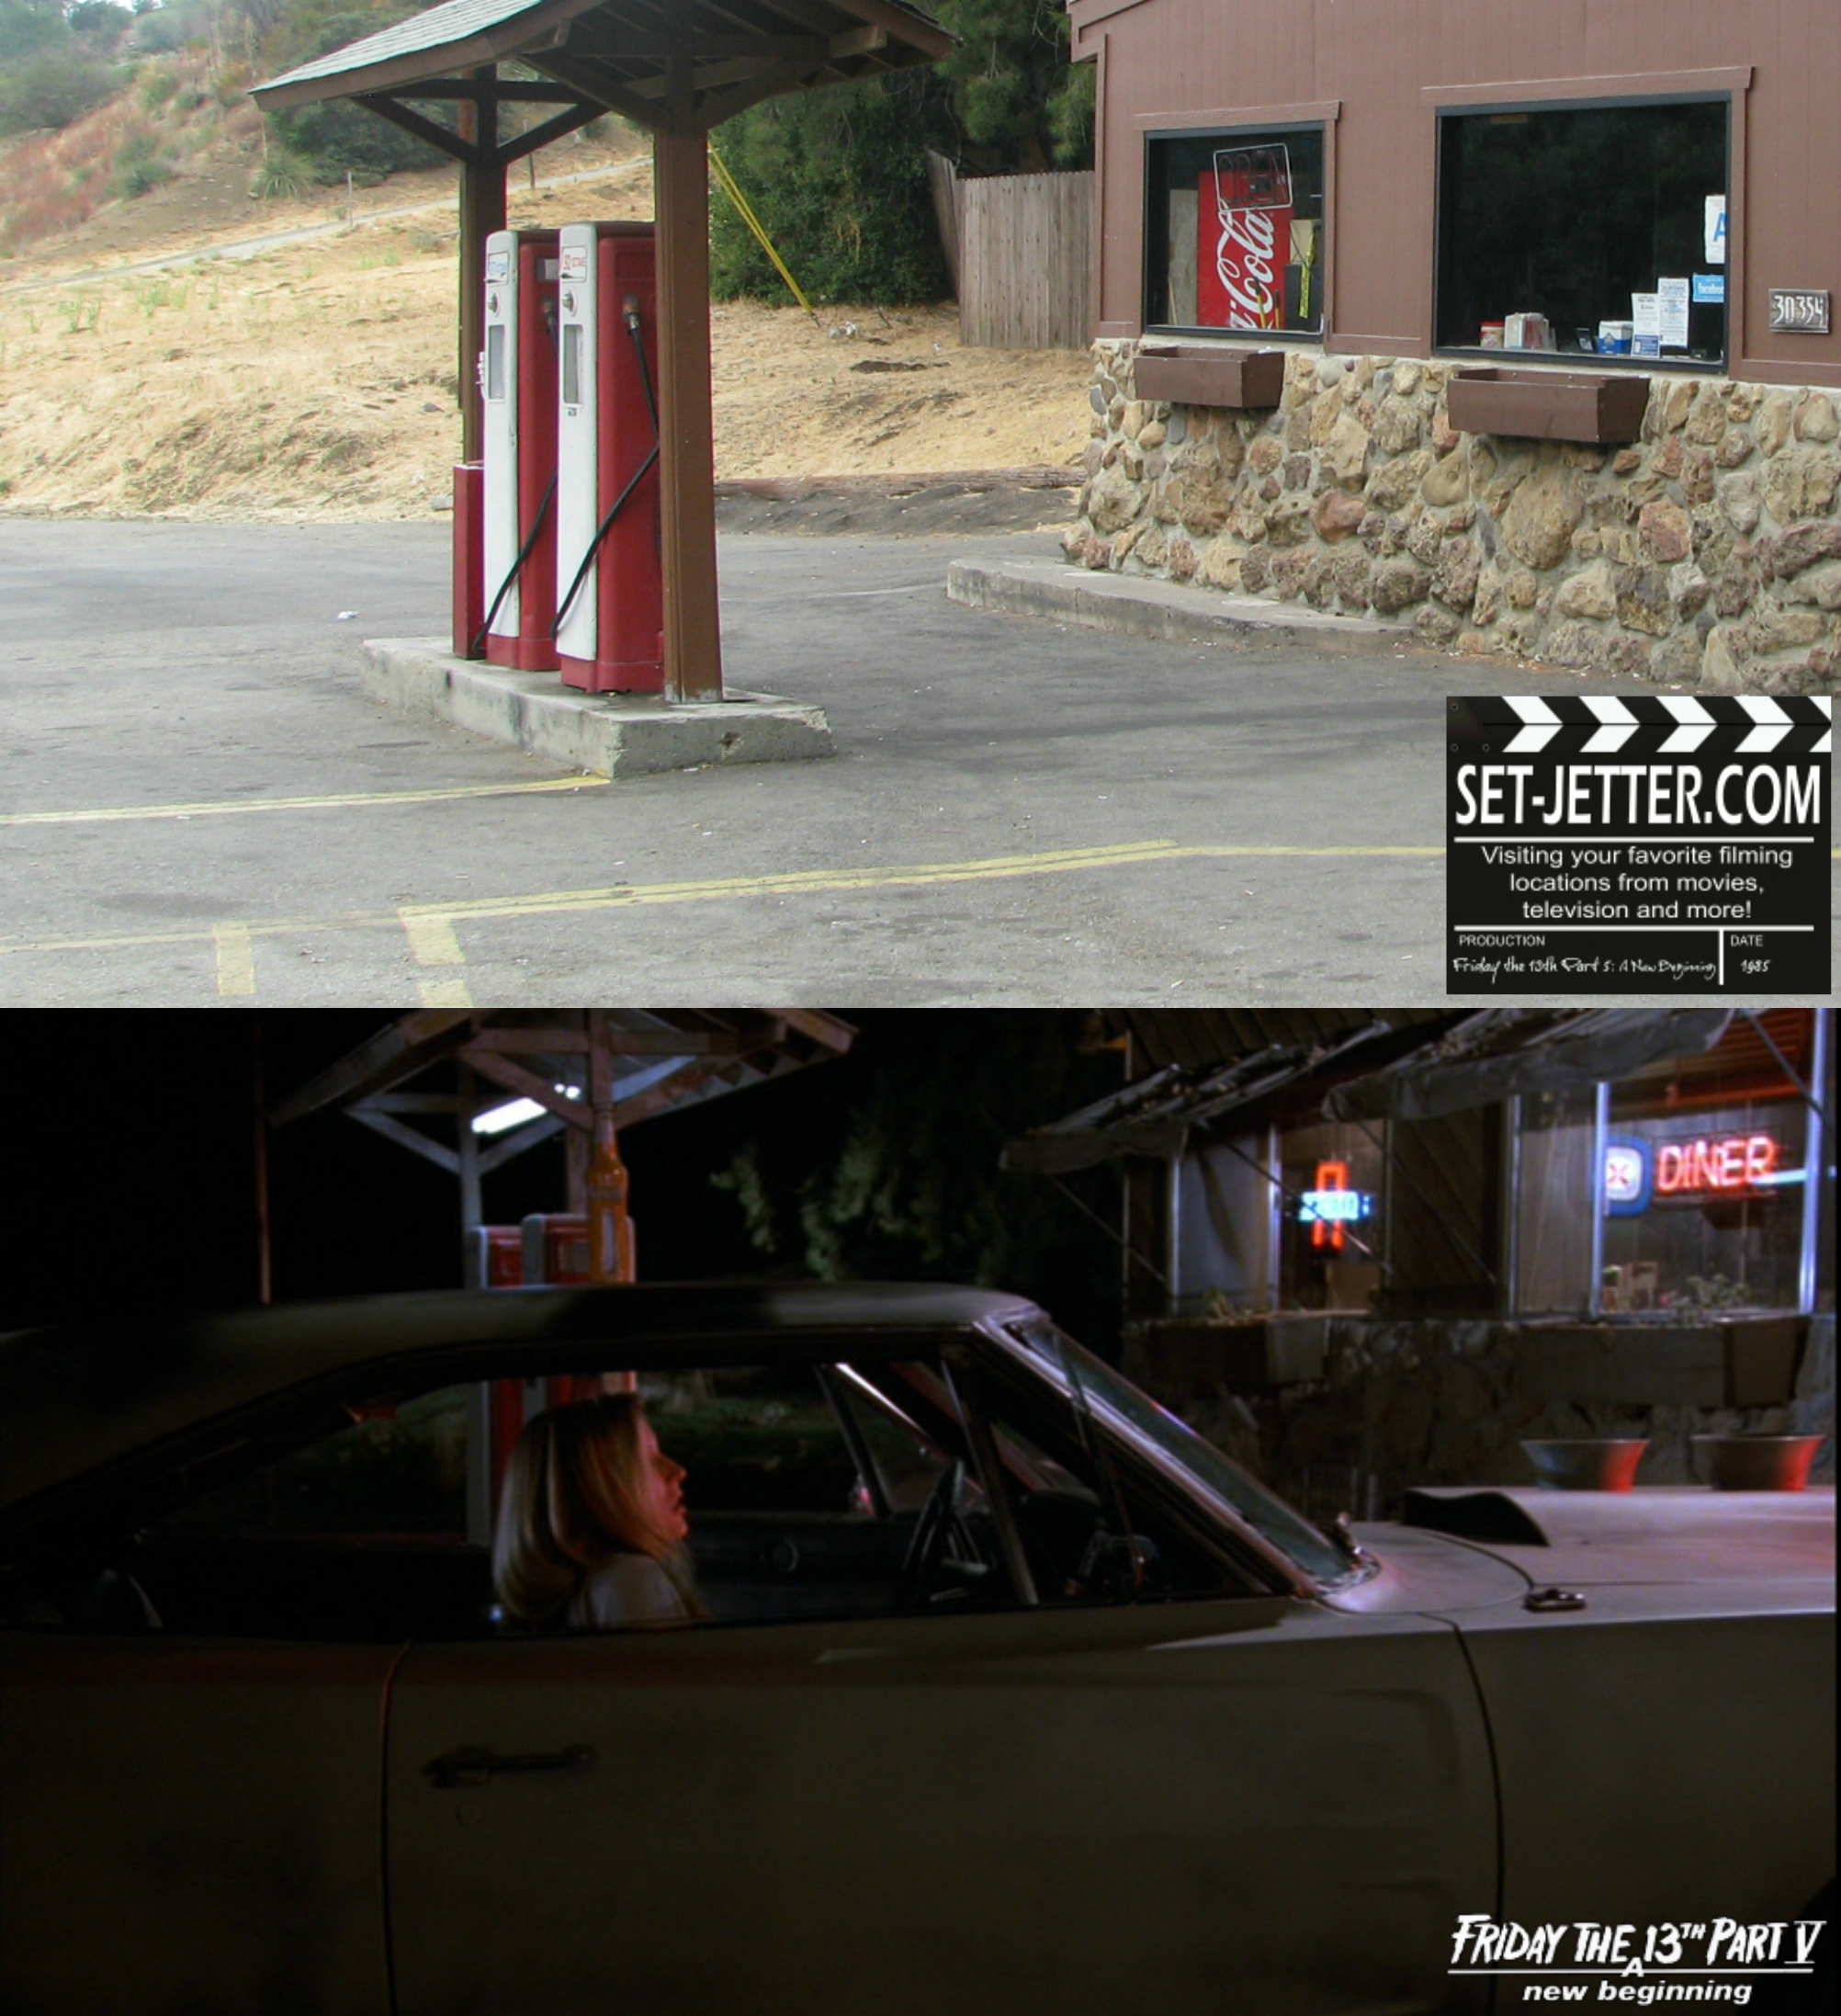 Friday the 13th Part V comparison 19.jpg